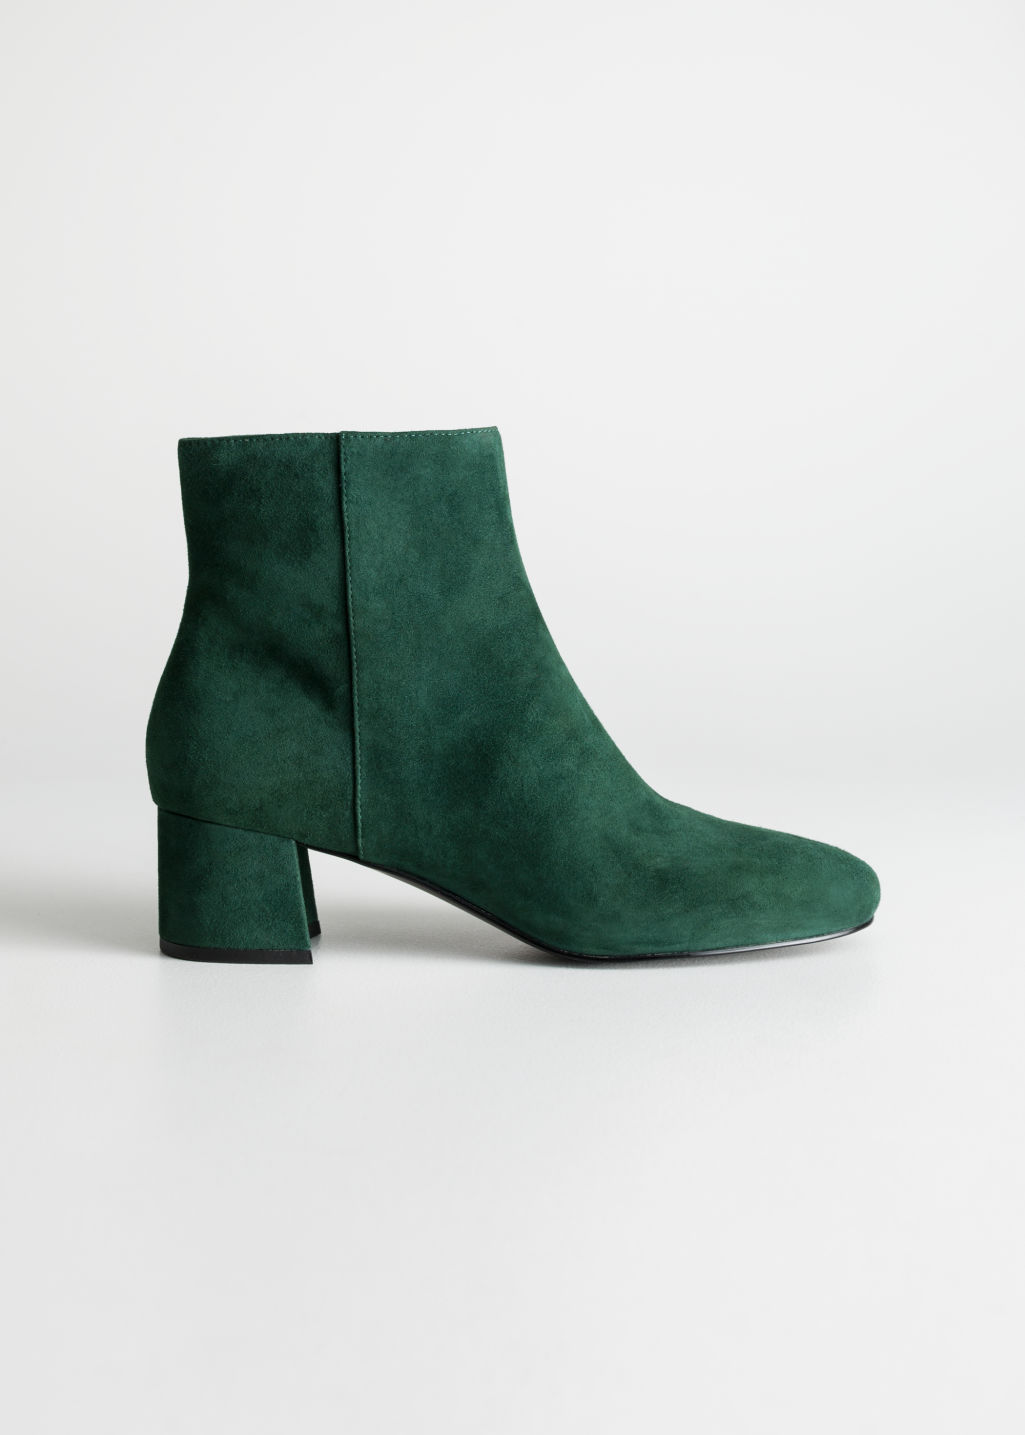 Suede Ankle Boots Emerald Green Ankleboots Amp Other